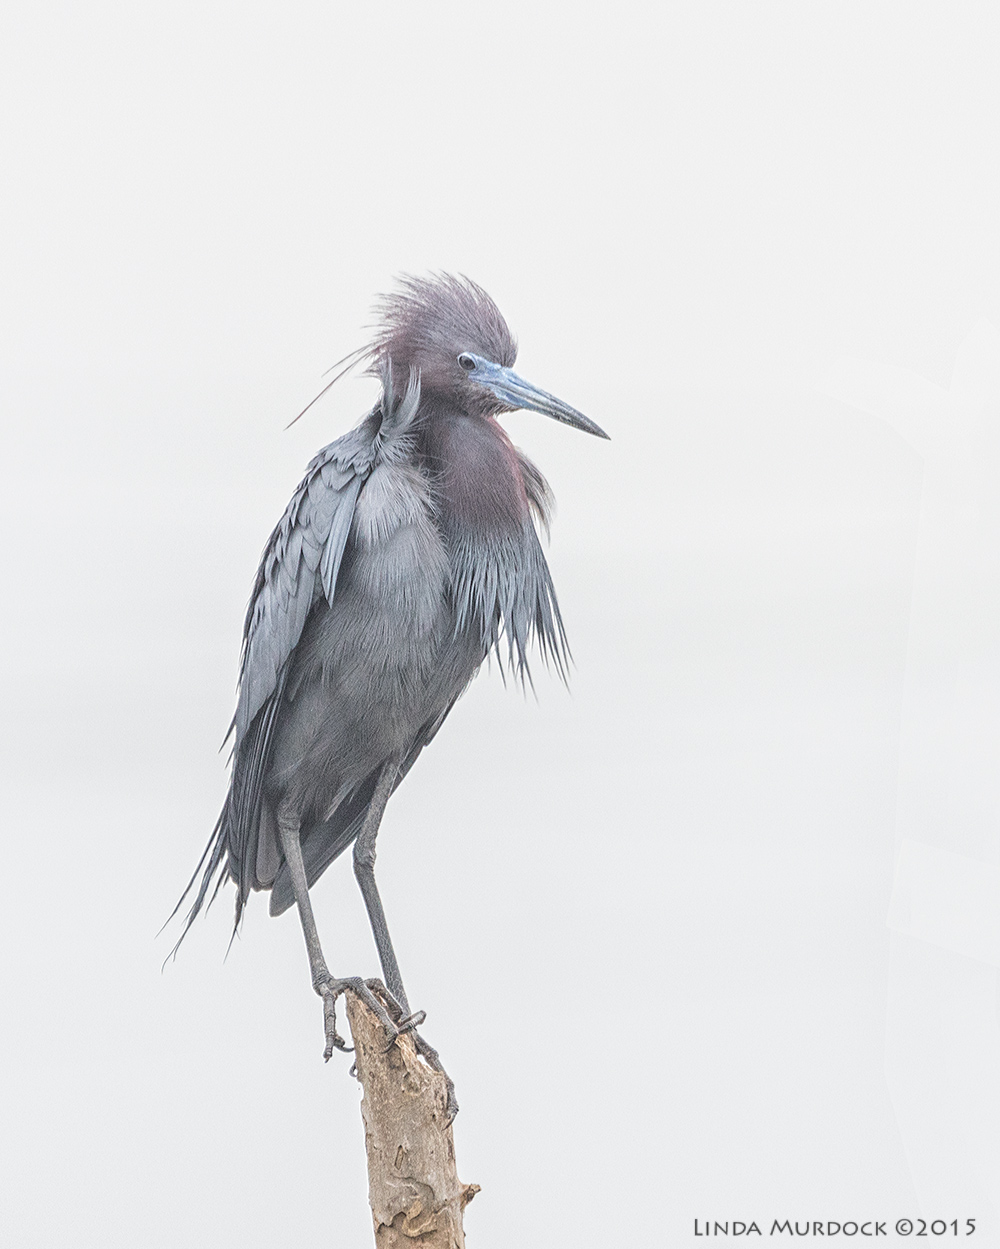 Little Blue Heron in the rain and breeze    Sony A77II with Sony 70-400 G2 f/5.6 1/1000 sec ISO 1000